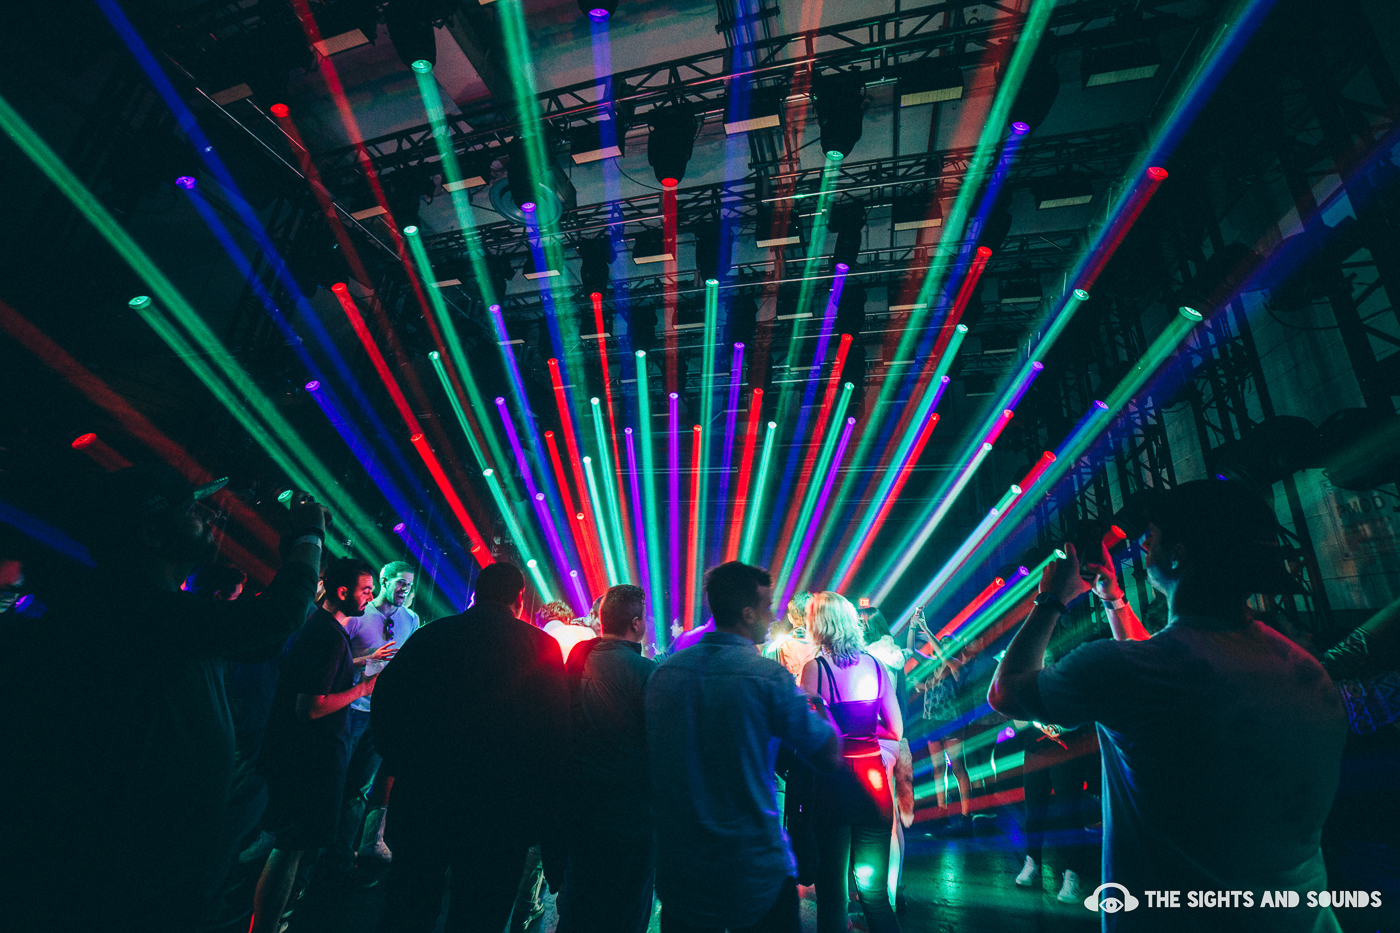 Day For Night Festival 2016 - The Sights And Sounds Music Magazine - Photo by Lexy Galvis